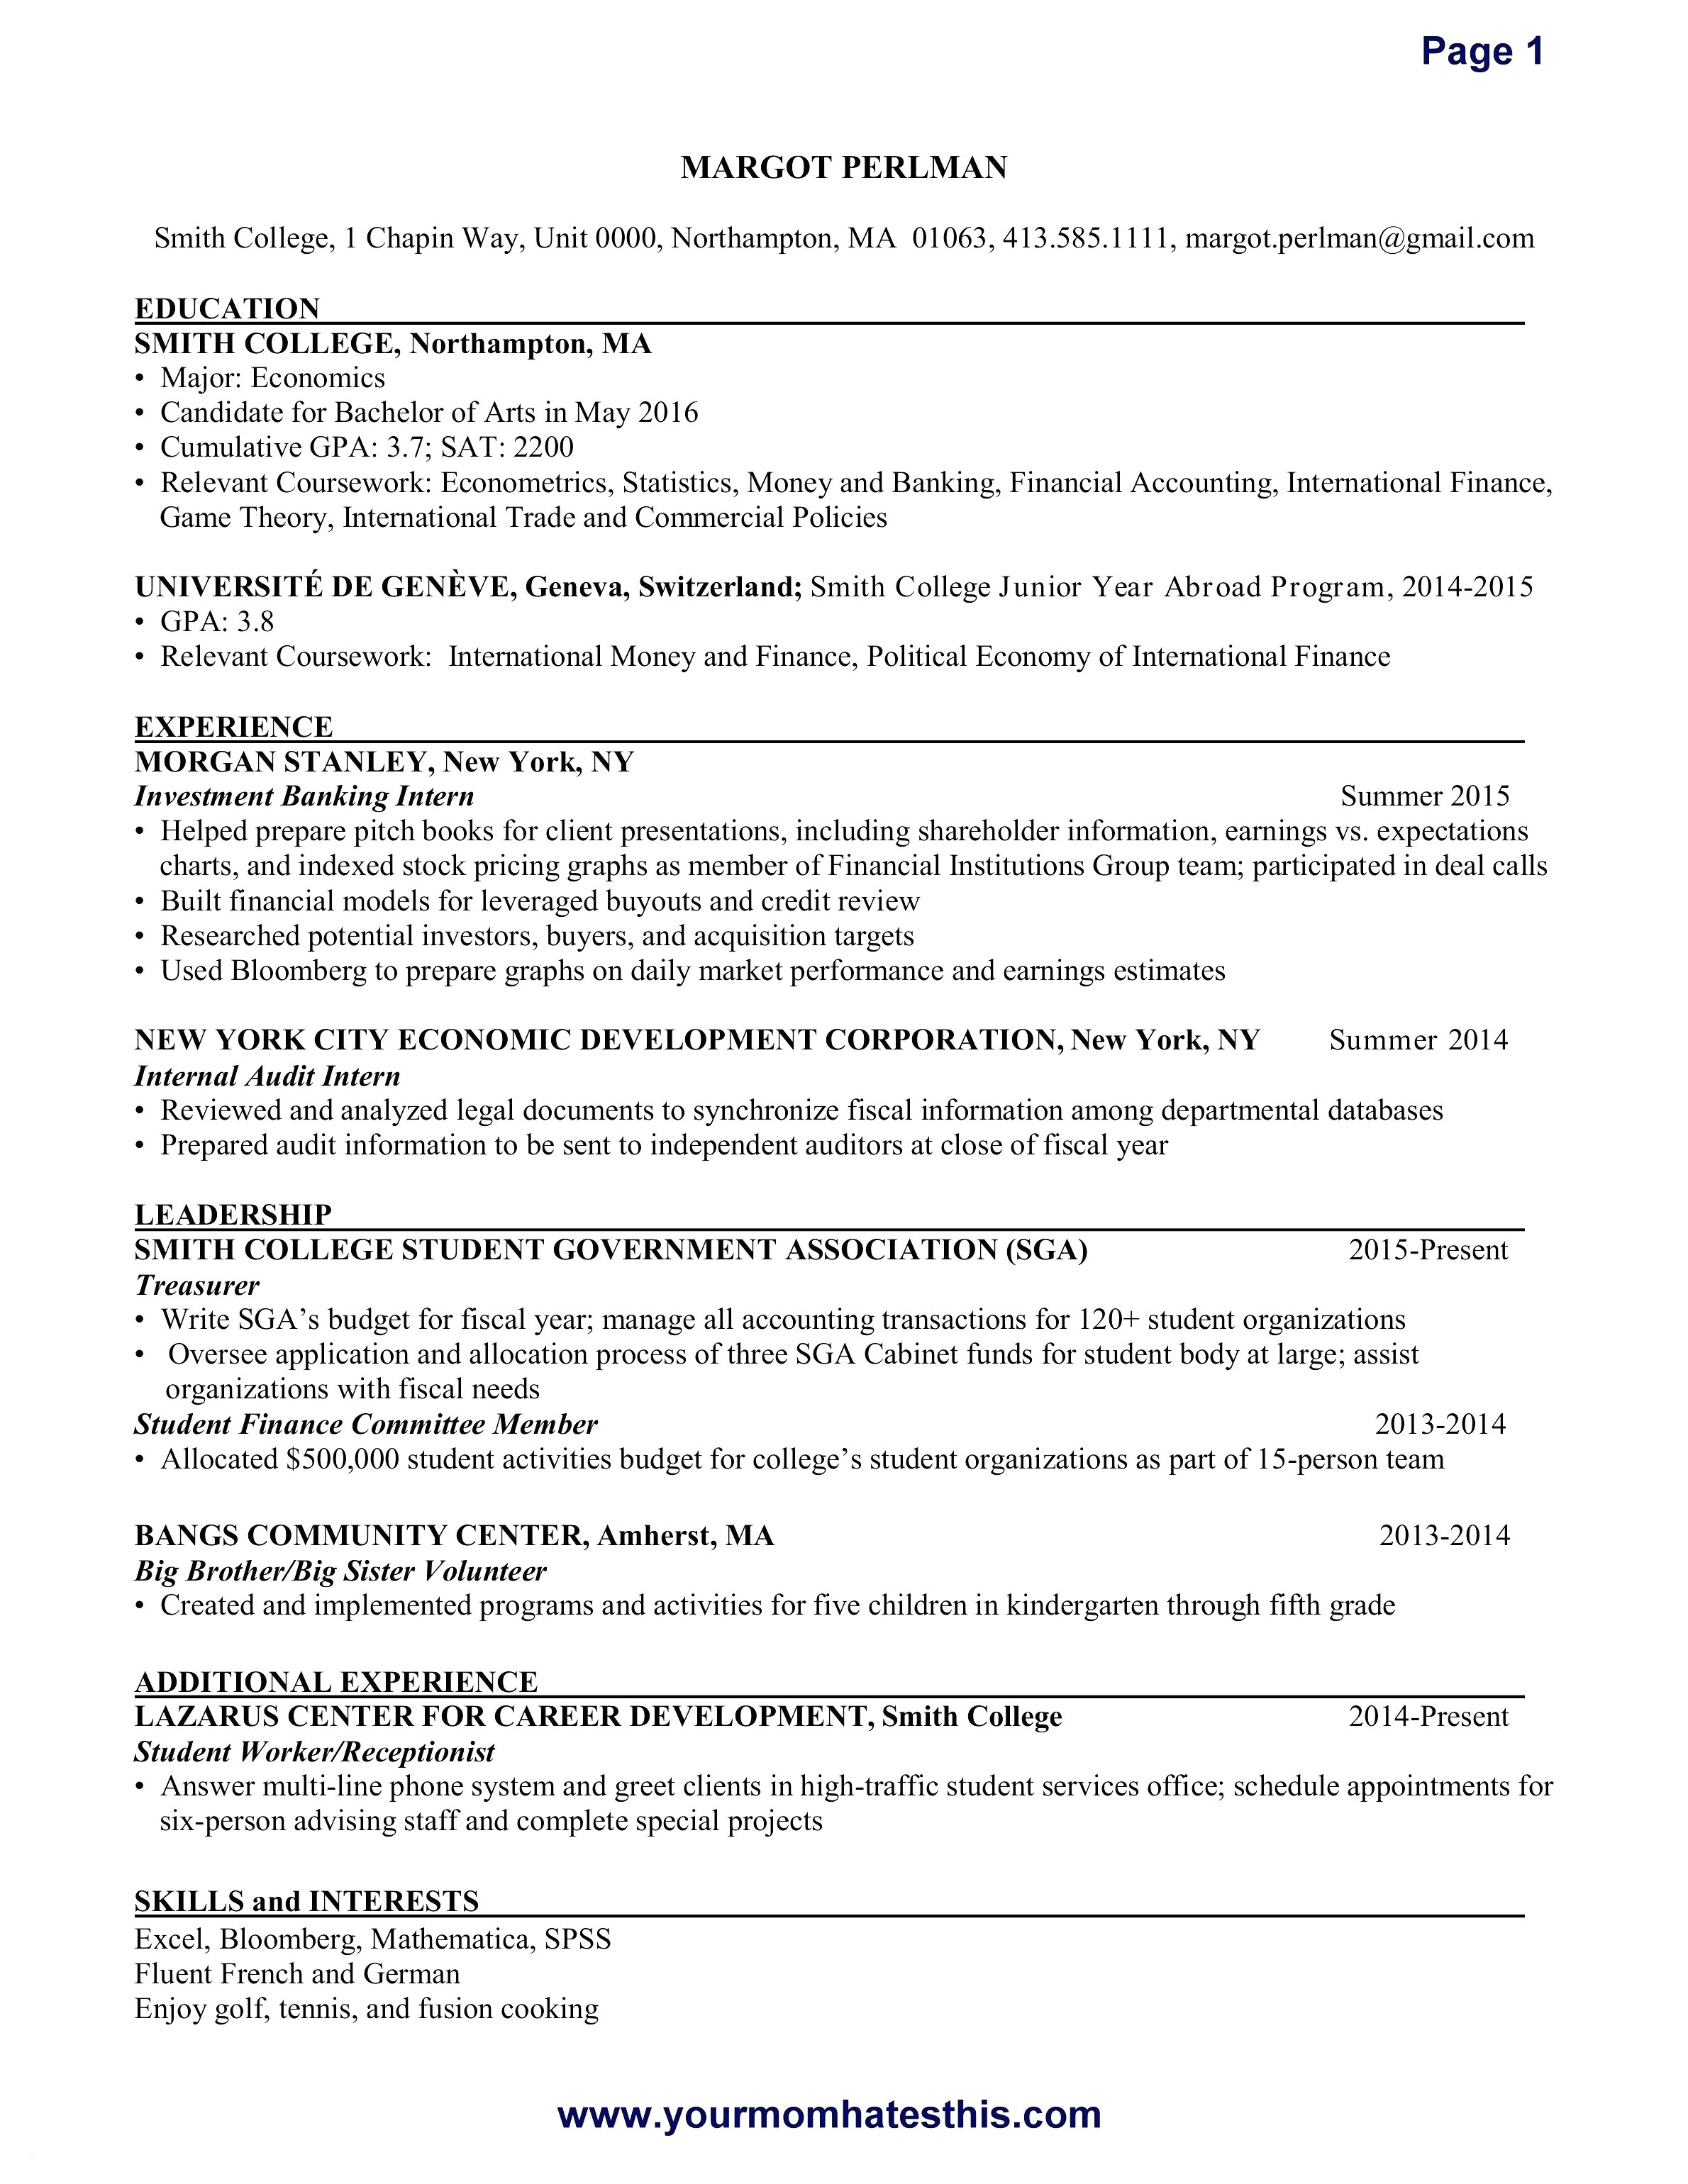 security resume template example-Free Resume Templates For Students New Lovely Pr Resume Template Elegant Dictionary Template 0d Archives security 8-m